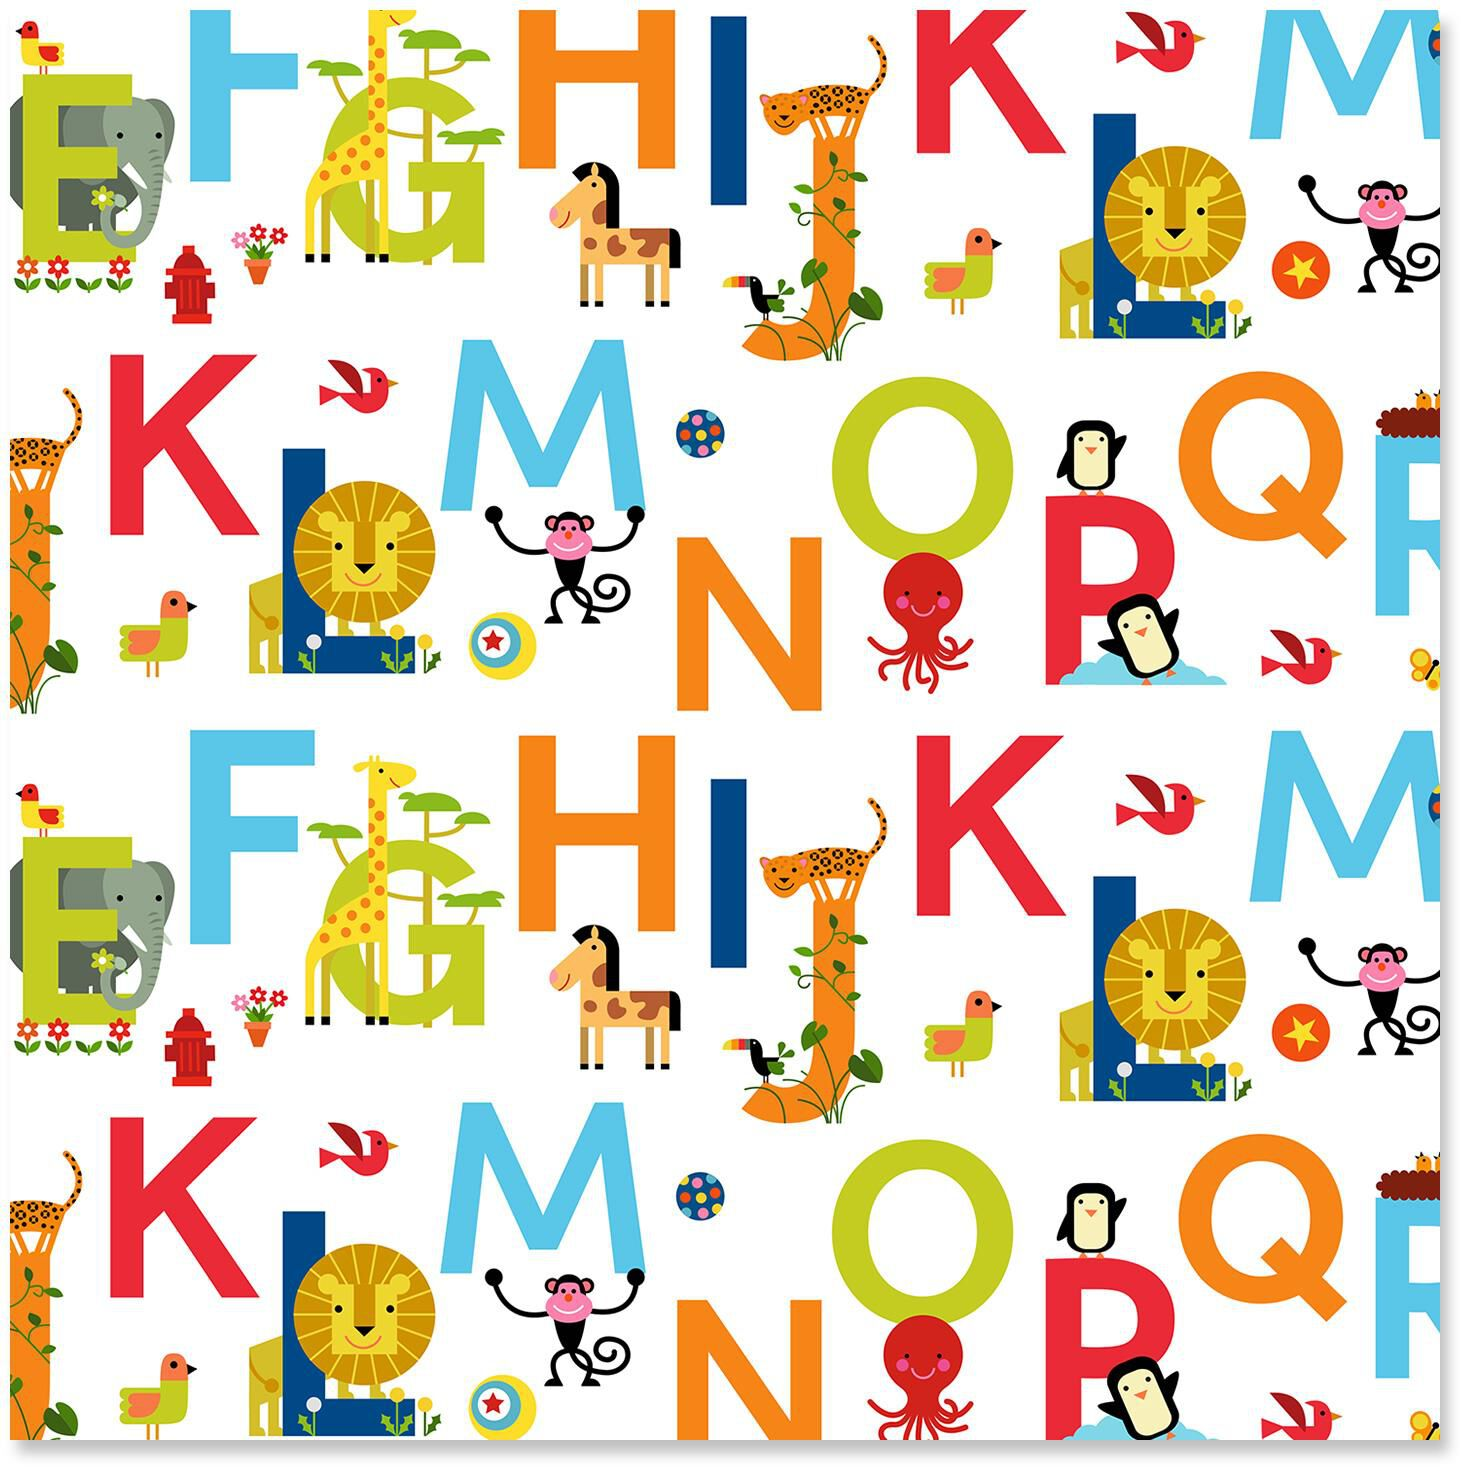 ABC Alphabet And Animals Wrapping Paper Roll 27 Sq Ft